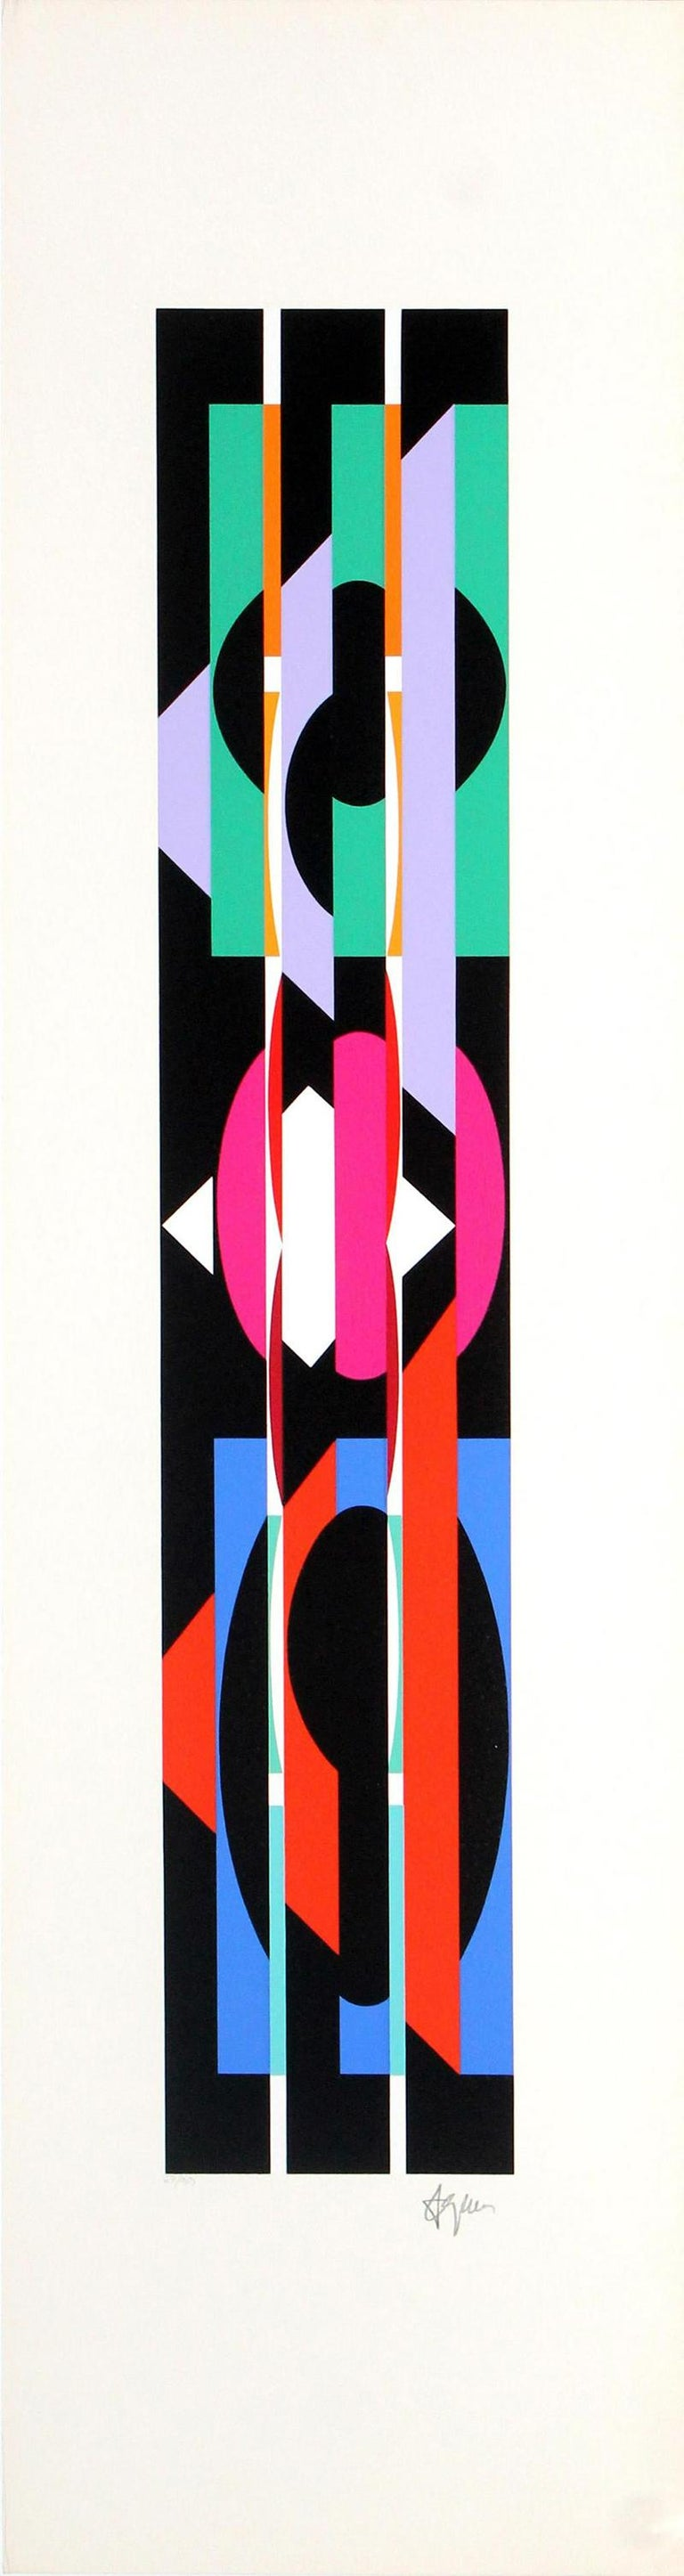 YAACOV AGAM  UNTITLED 4 FROM THE +-X9 SUITE  SIGNED AND NUMBERED - Op Art Print by Agam Yaacov